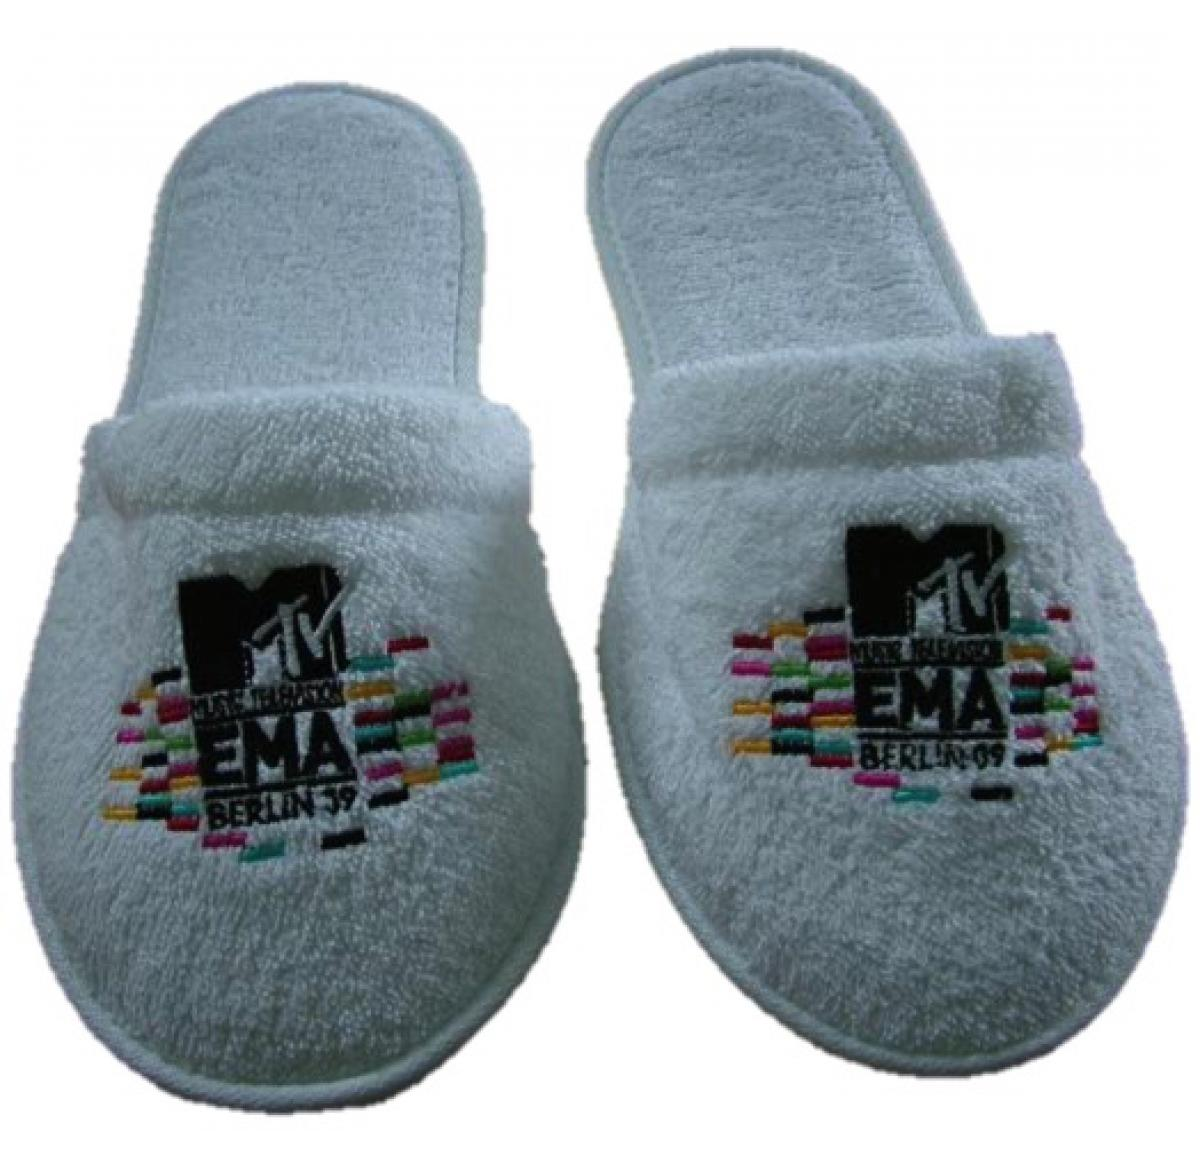 Closed Toe Towelling Spa / Hotel Slippers Embroidered